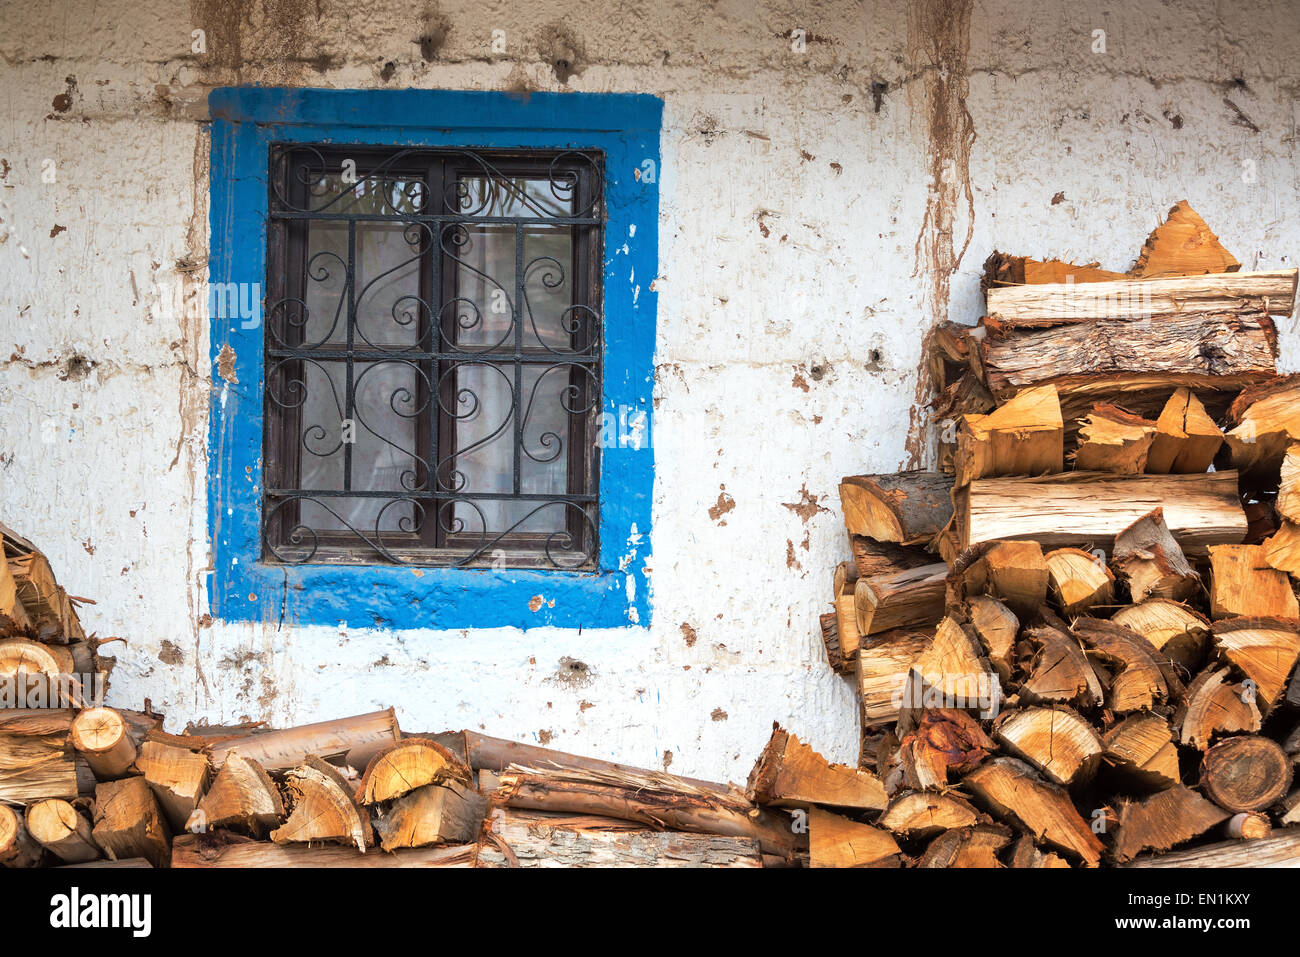 Firewood next to a blue and white colonial window in Tarma, Peru - Stock Image